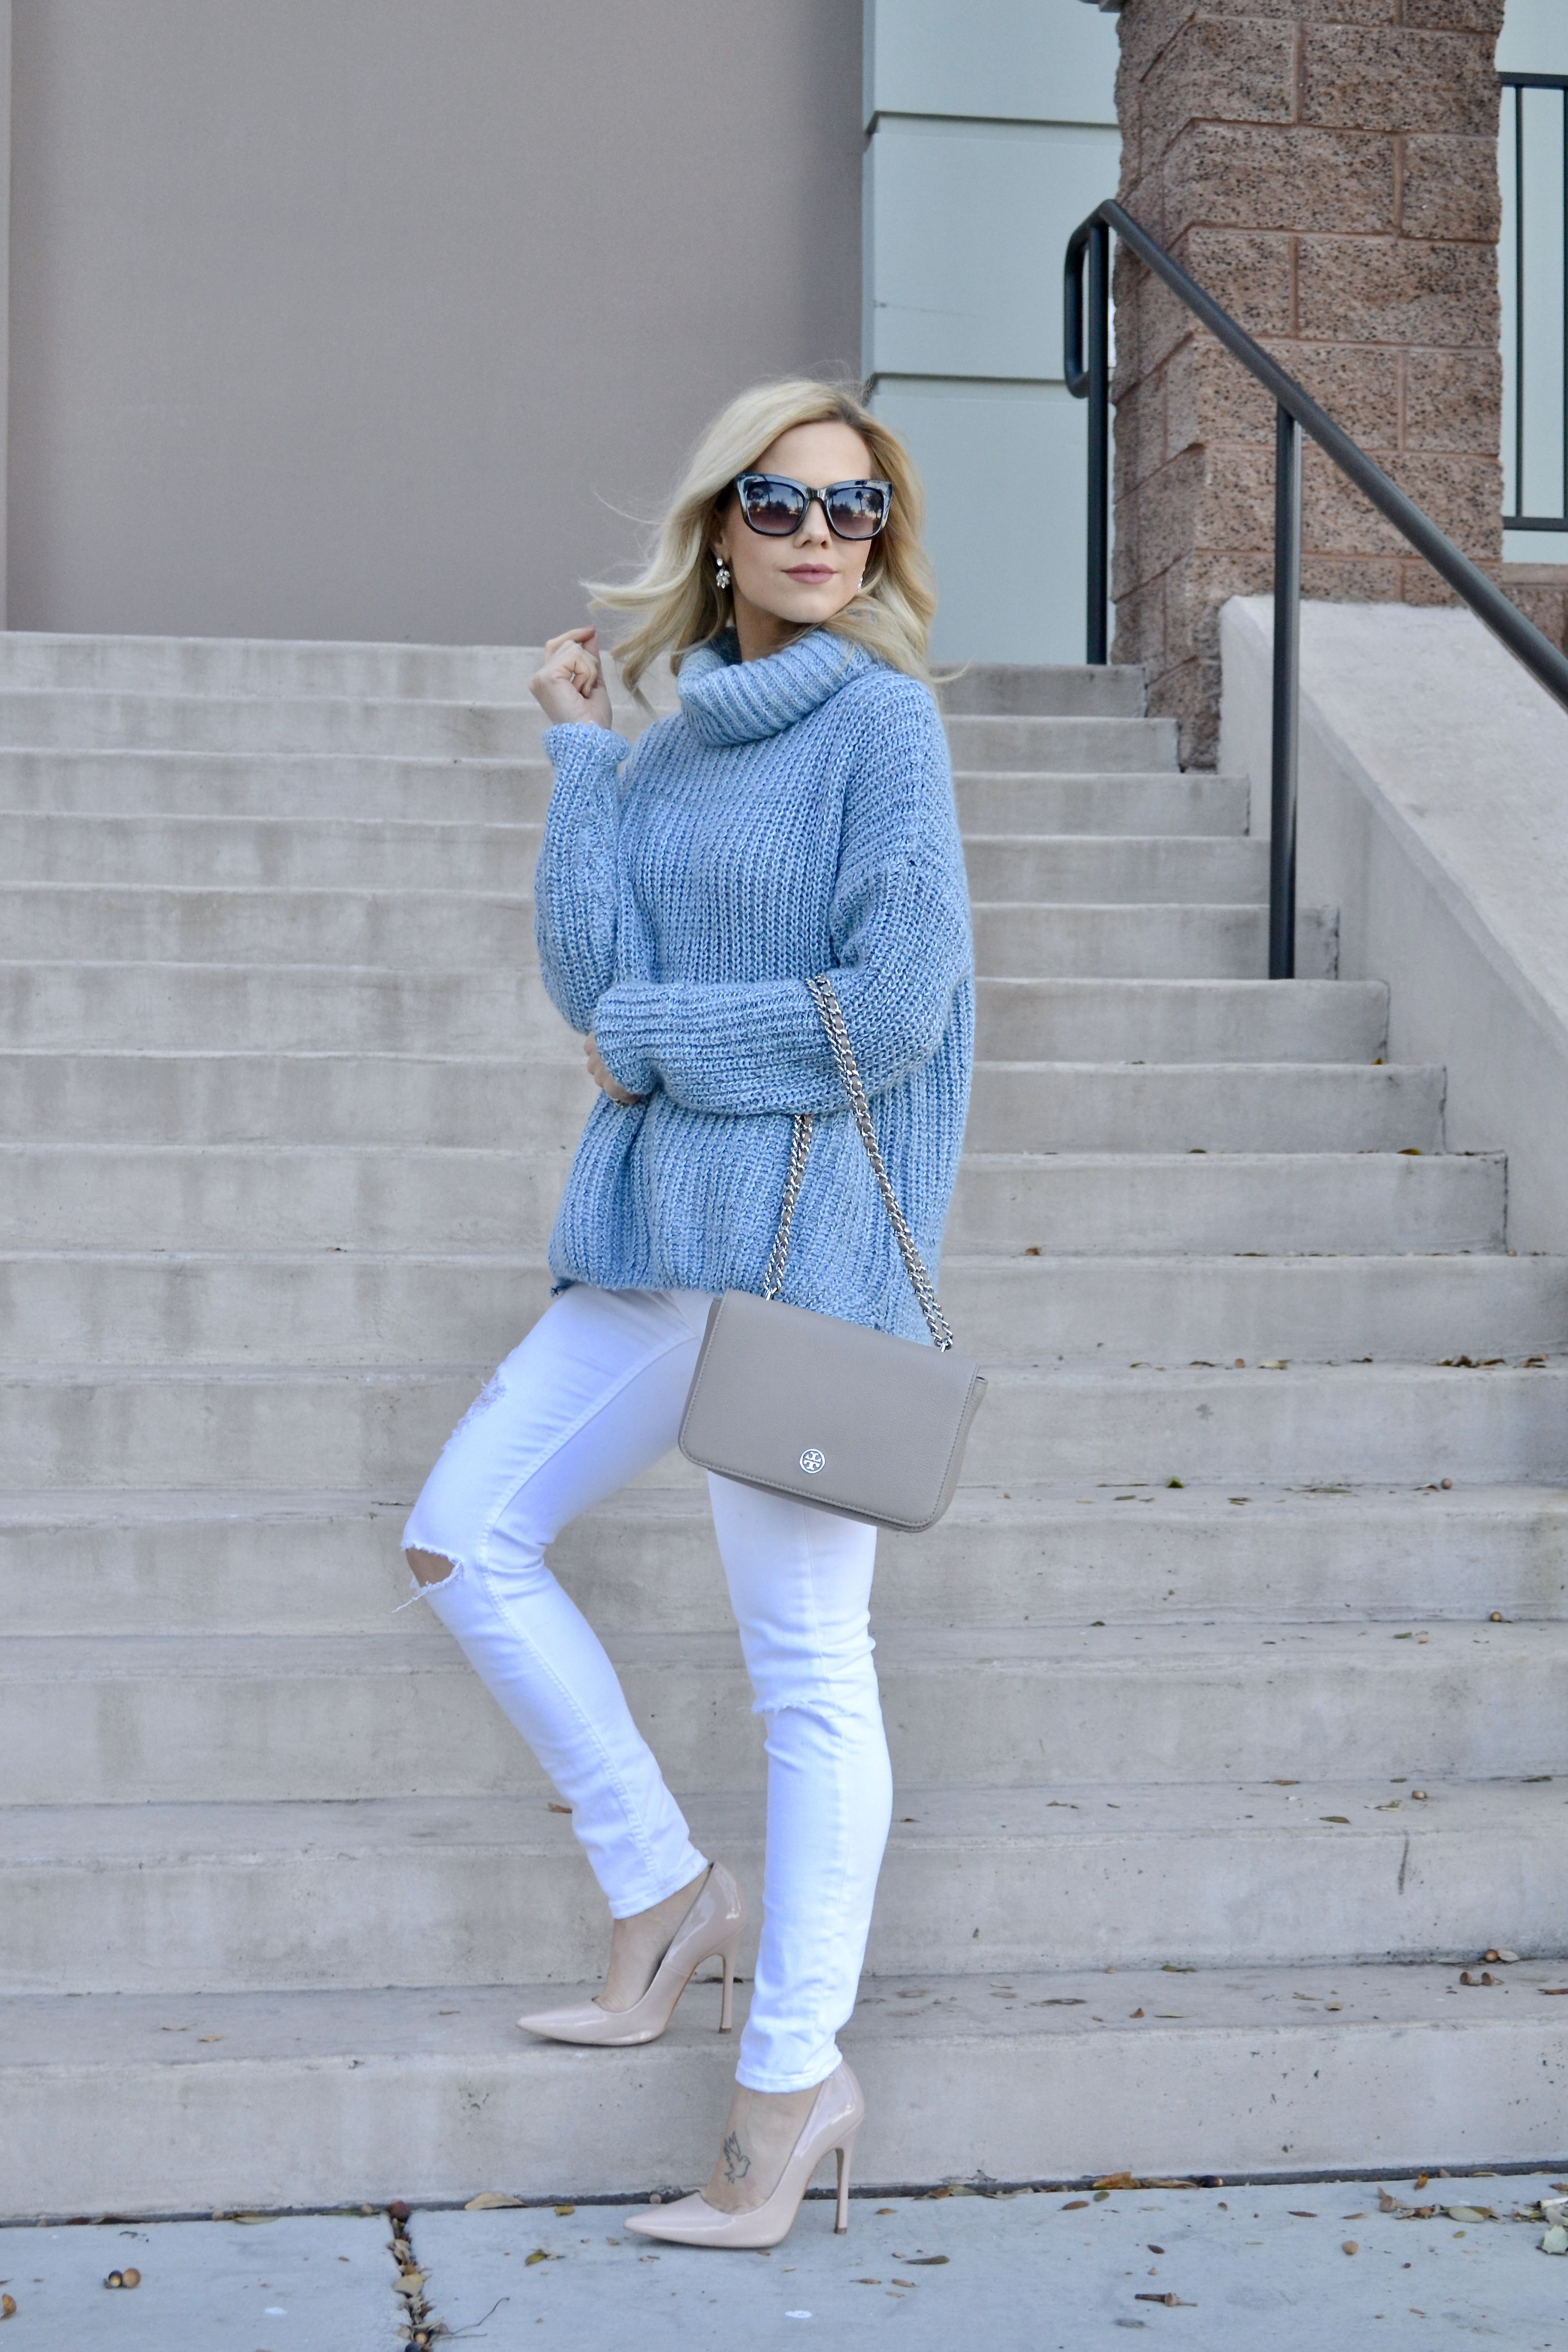 The Coziest Blue Sweater I Ever Did Wear | Nude pumps, Tory burch ...